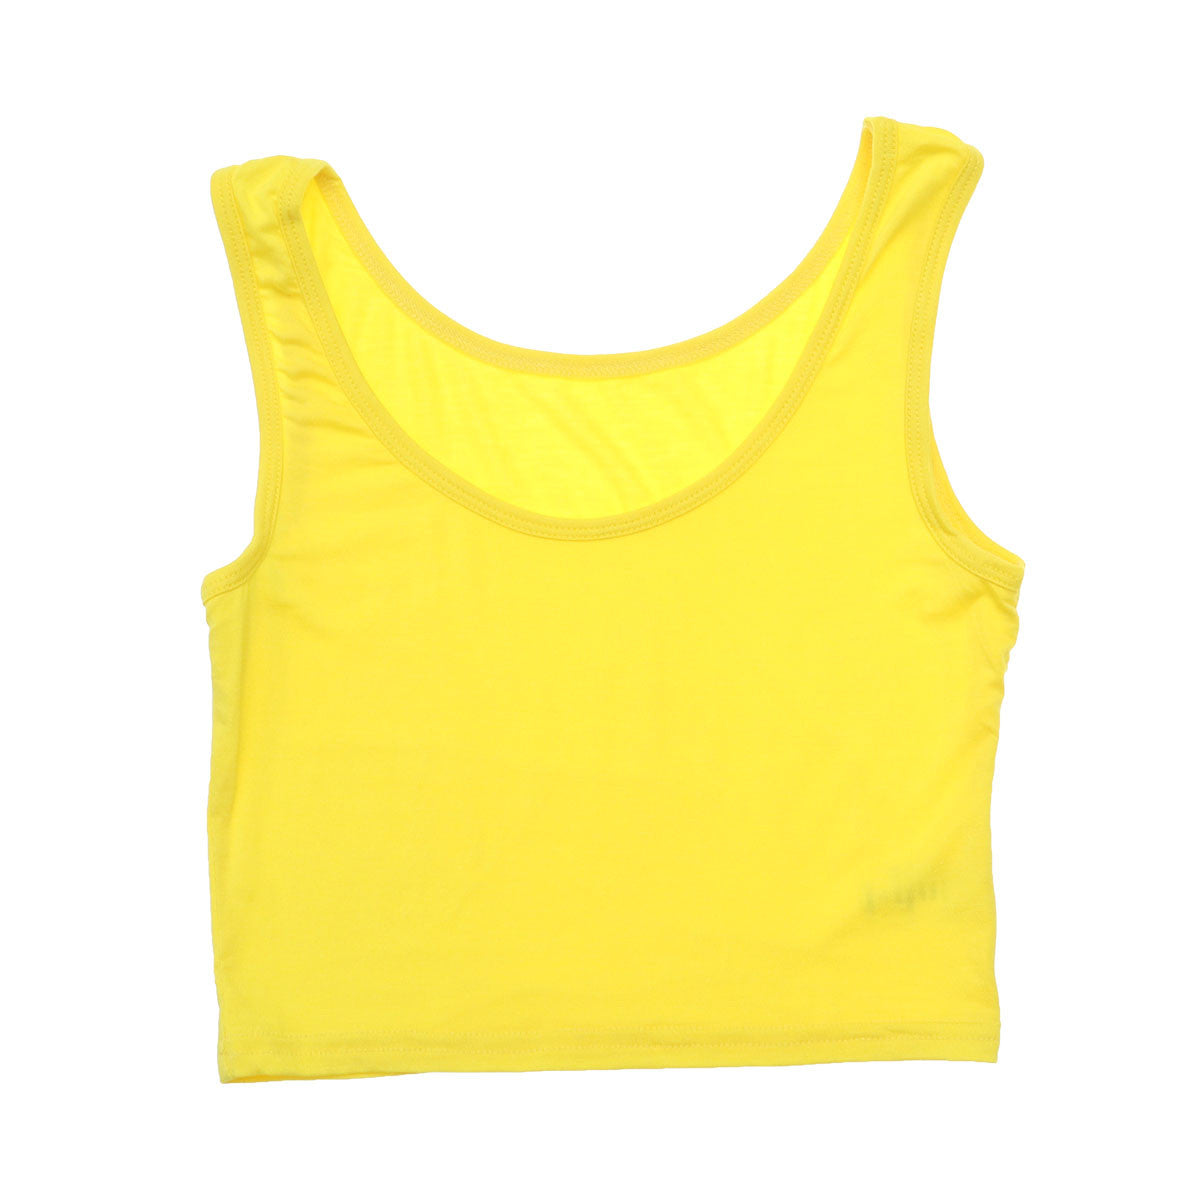 'Melissa' - Cropped Yoga Tank Top